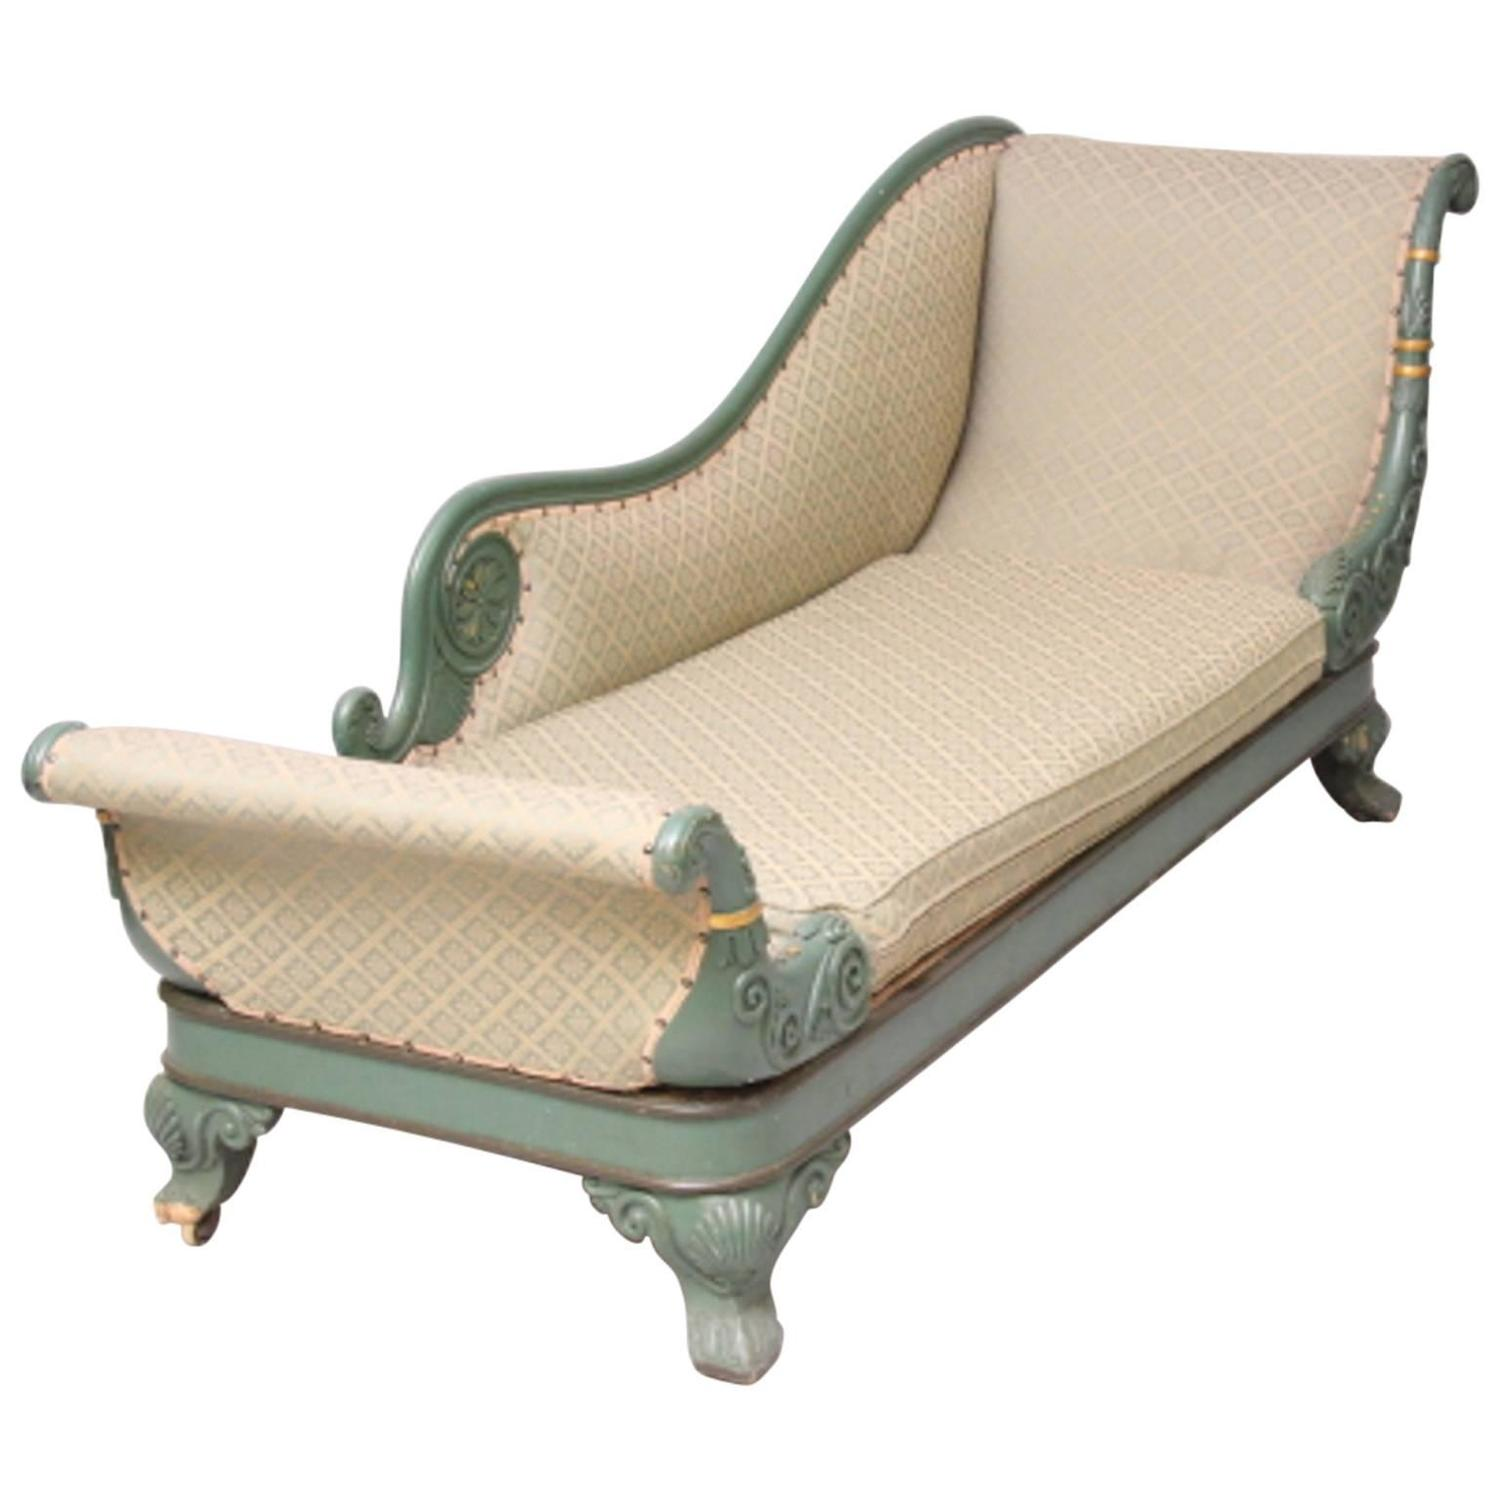 Antique 19th century painted chaise longue for sale at 1stdibs for Antique chaise longue for sale